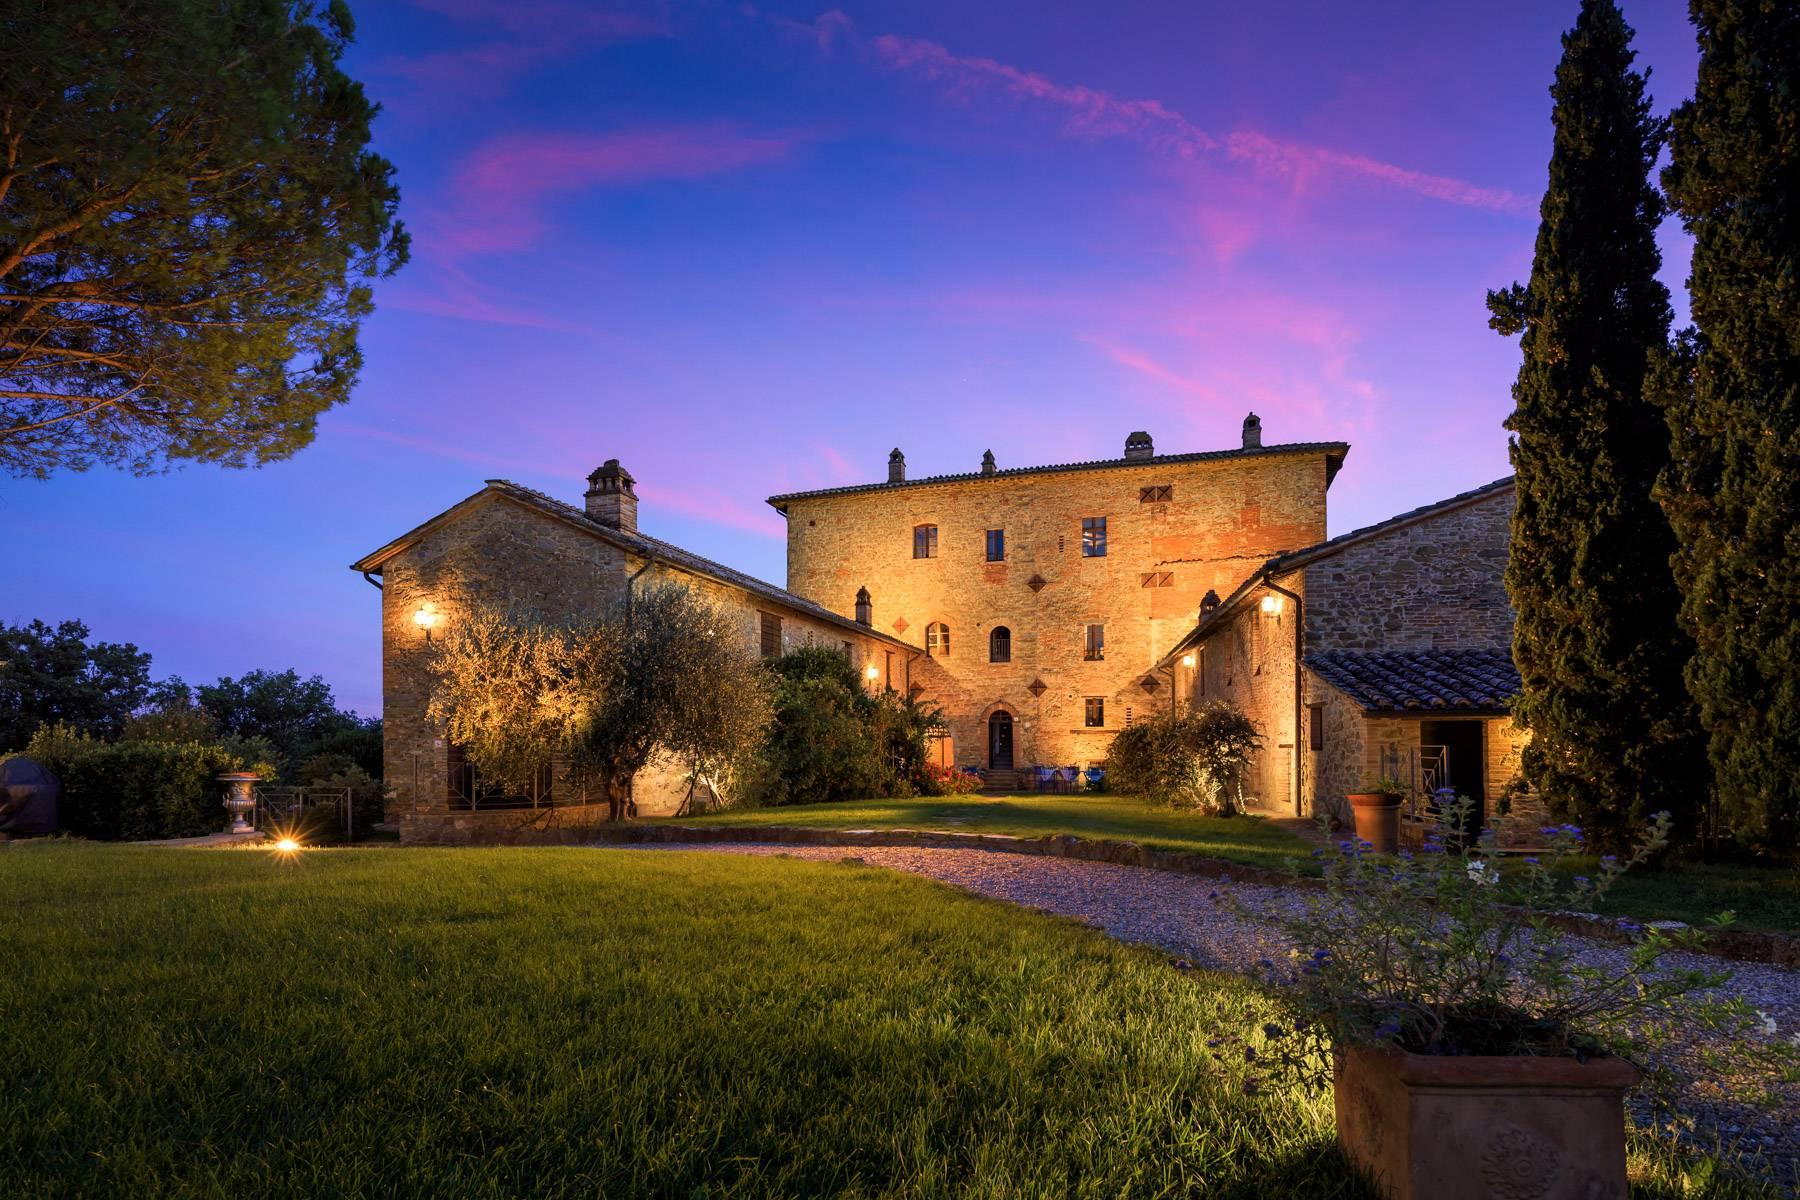 Magnificent castle in the heart of Umbria - 4